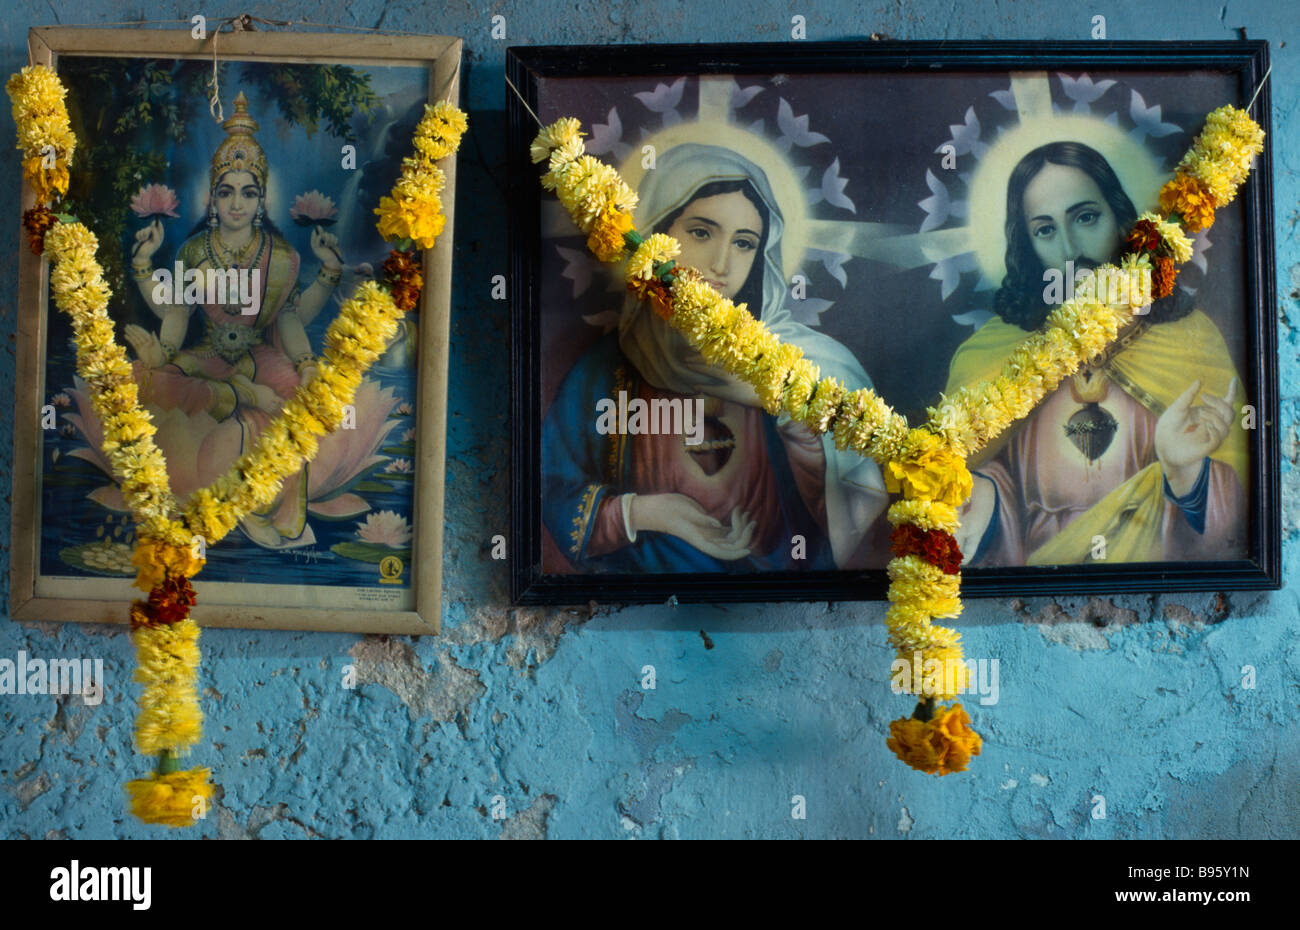 INDIA Religion Christian / Hindu Framed pictures of Hindu and Christian iconography hung with marigold flower garlands. - Stock Image